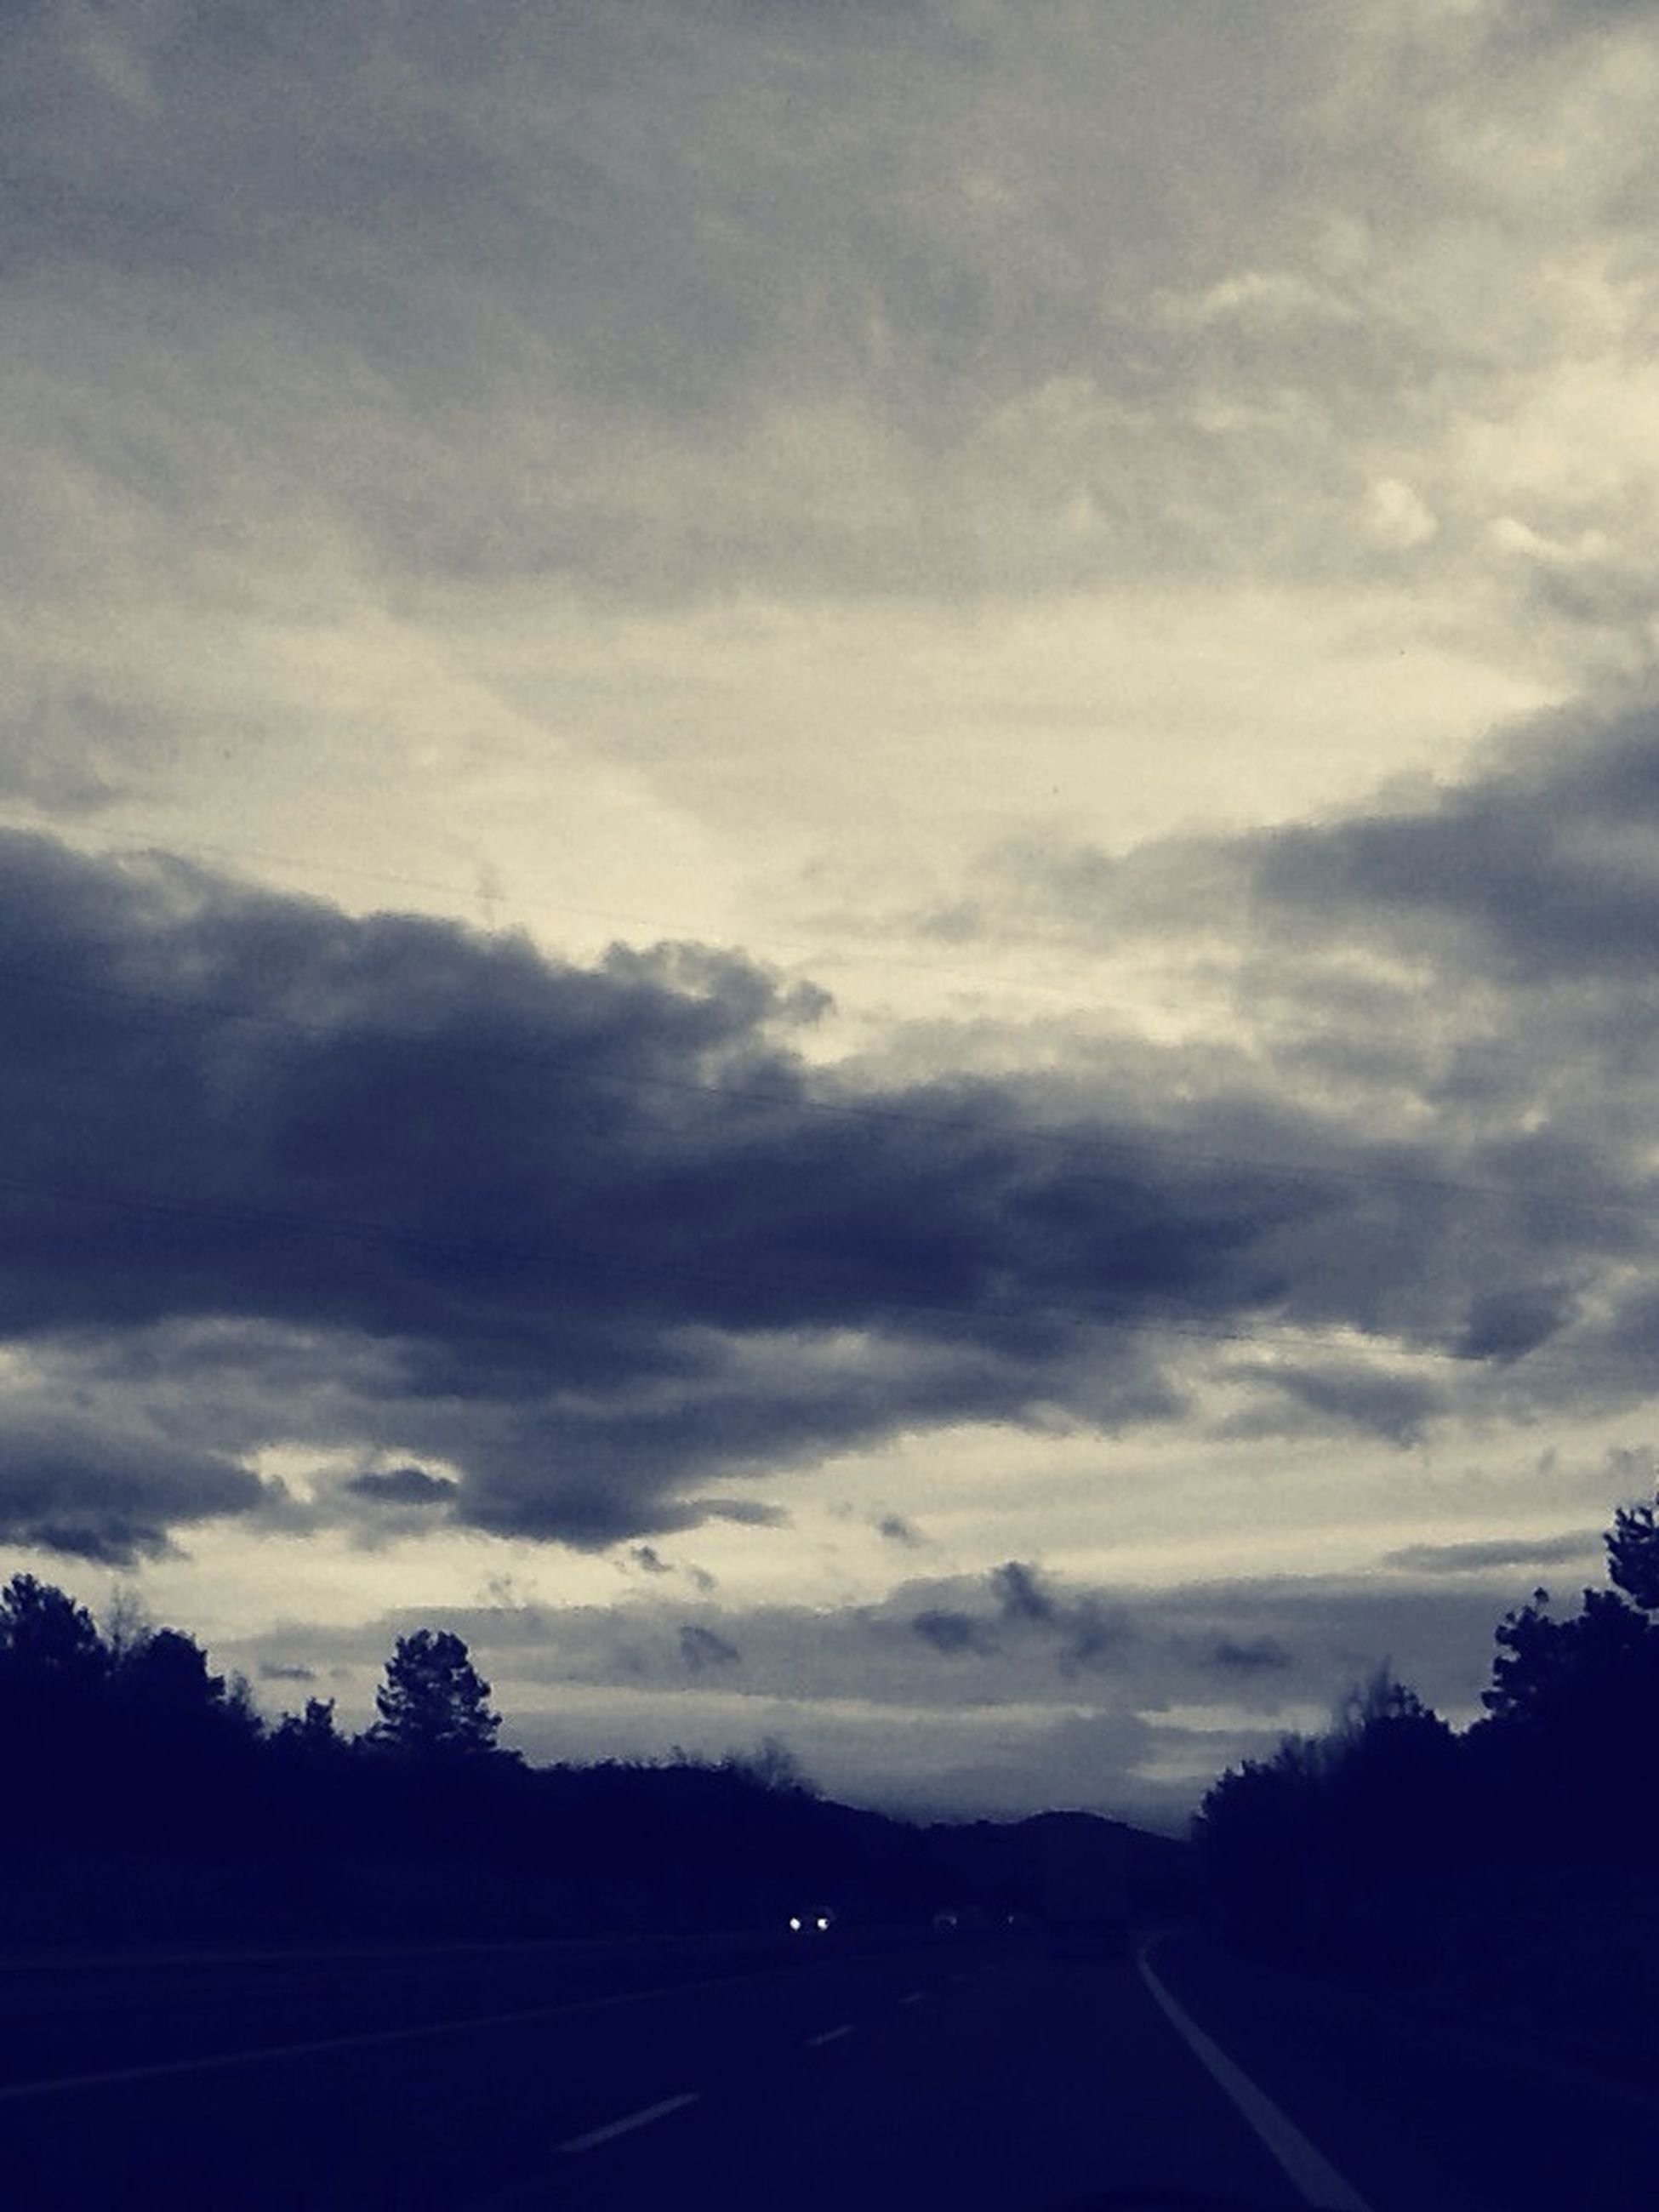 transportation, sky, road, cloud - sky, the way forward, silhouette, tree, cloudy, diminishing perspective, tranquility, tranquil scene, cloud, nature, scenics, landscape, beauty in nature, road marking, car, weather, vanishing point